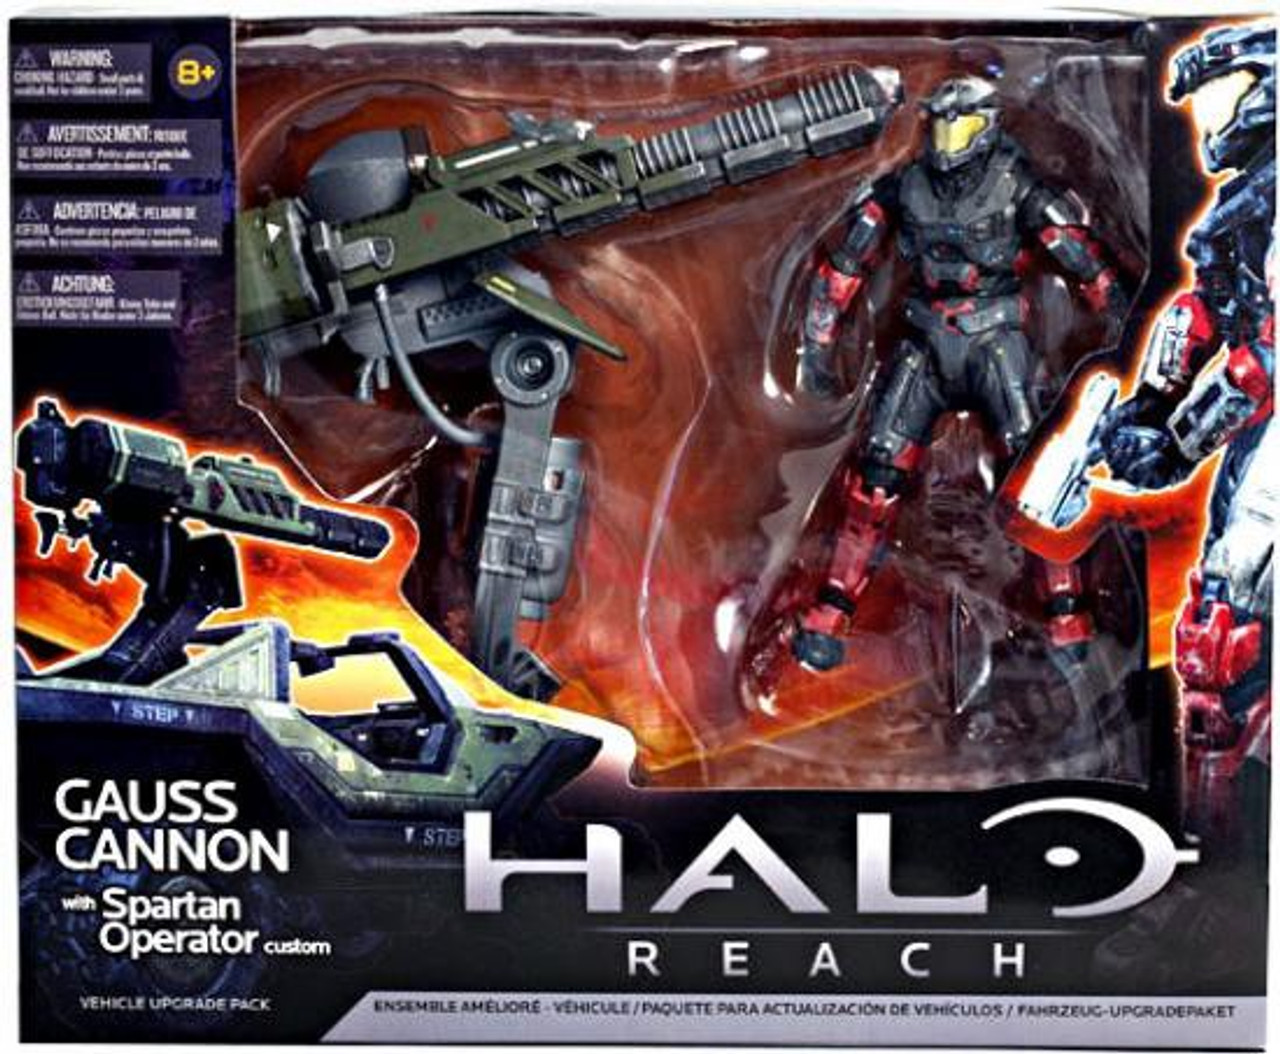 McFarlane Toys Halo Reach Vehicle Upgrade Packs Gauss Cannon with Spartan Operator Custom